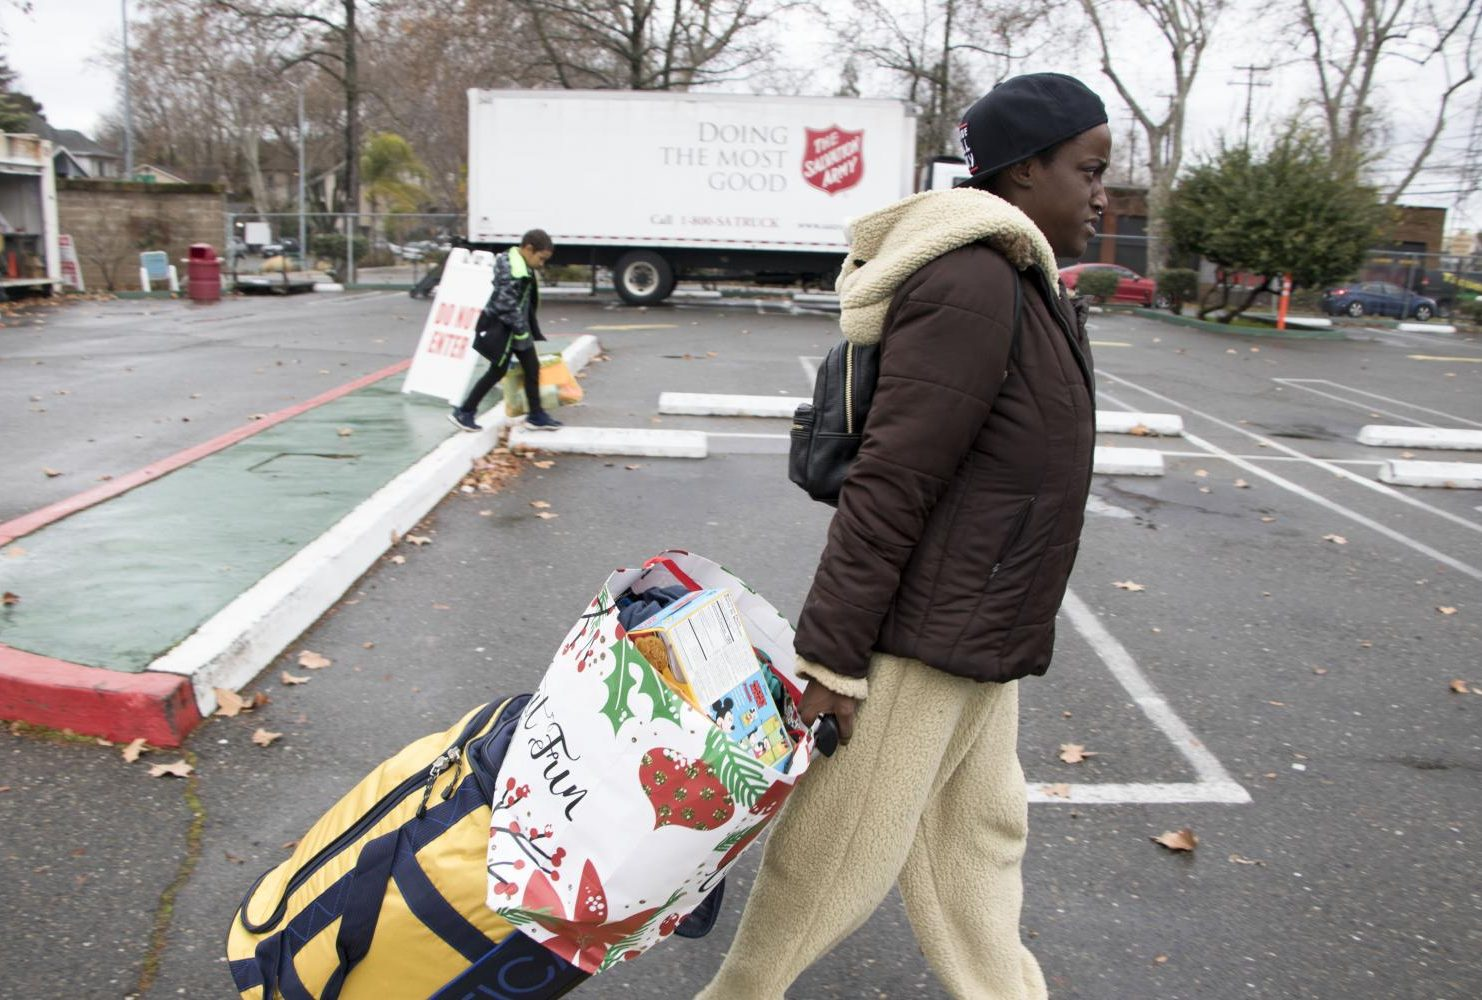 After checking out of the motel, Duren-Hill and her son make their way to The Salvation Army to get a new suitcase and some clothes for themselves in Sacramento, Calif. on Jan. 5, 2019. (Photo by Ashley Hayes-Stone)